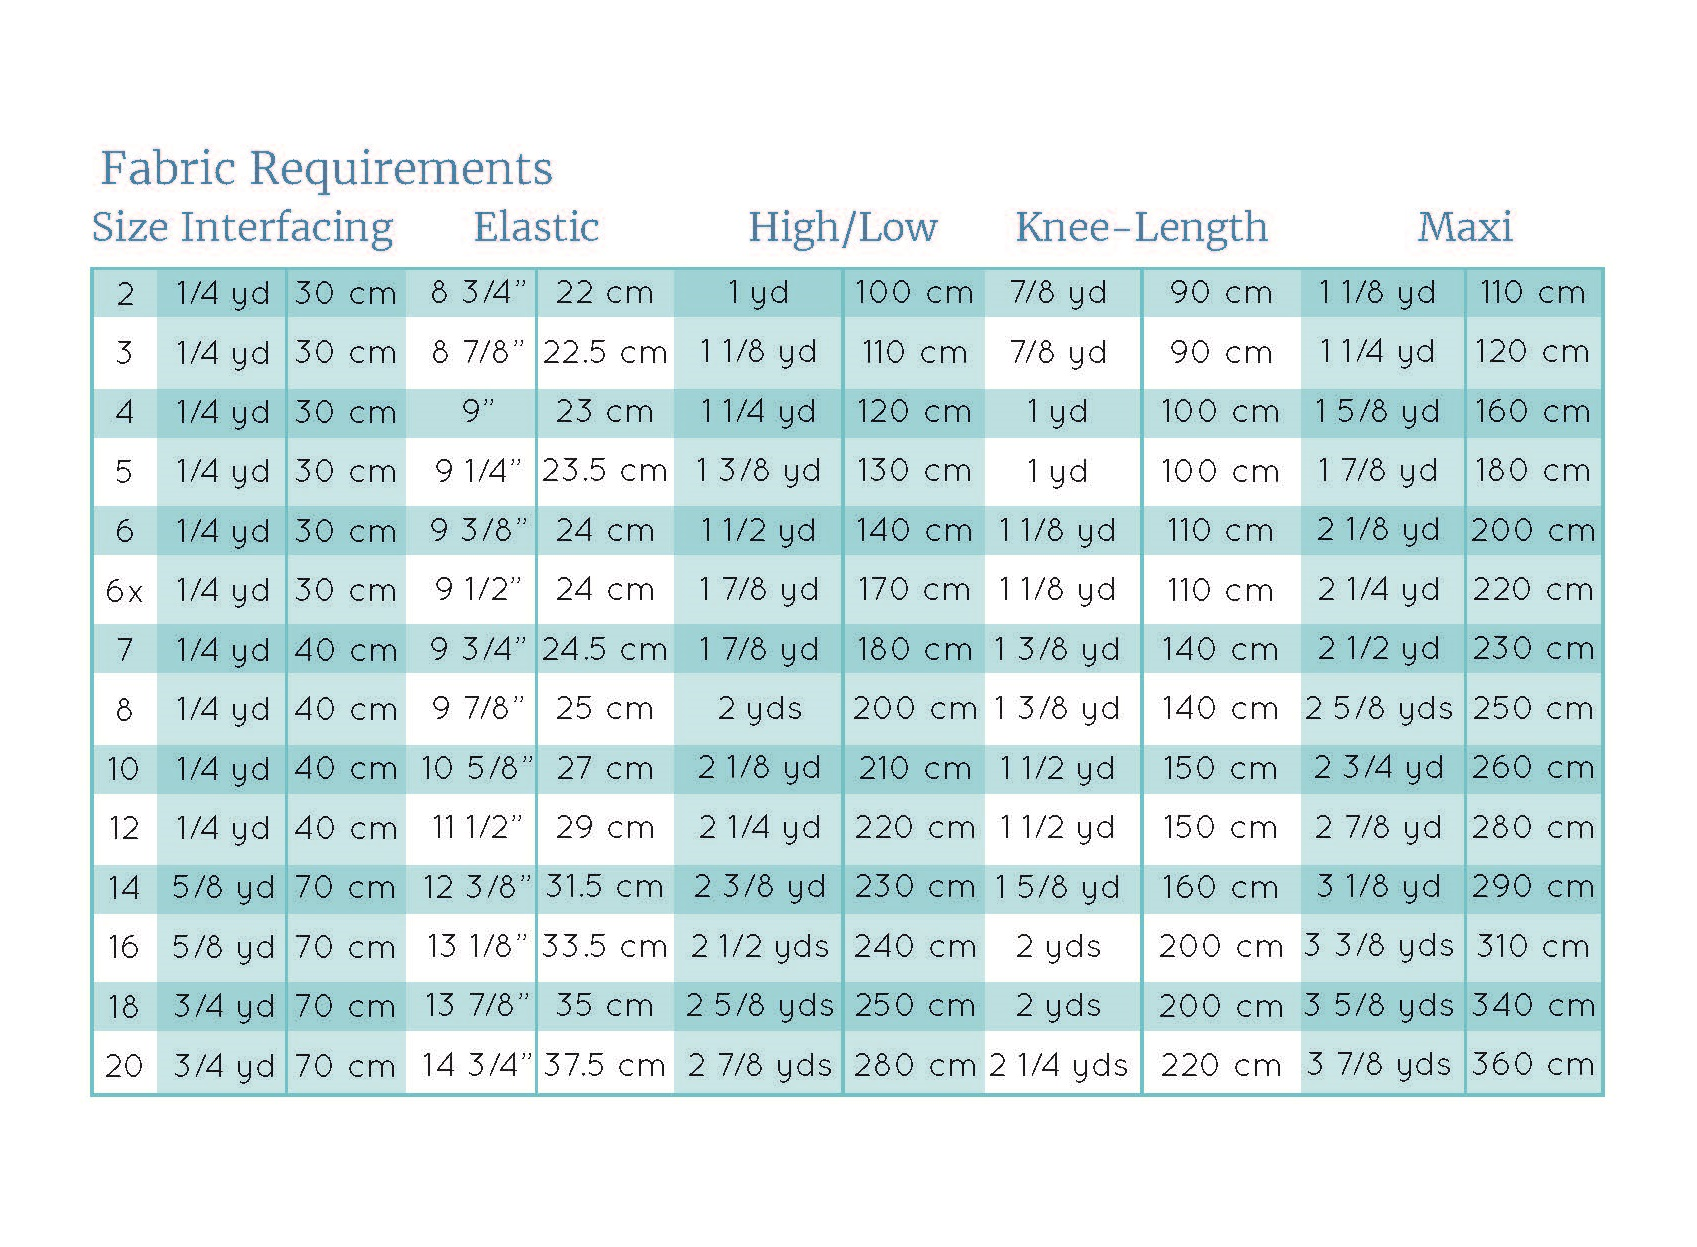 Girls BBS Fabric Requirements Table